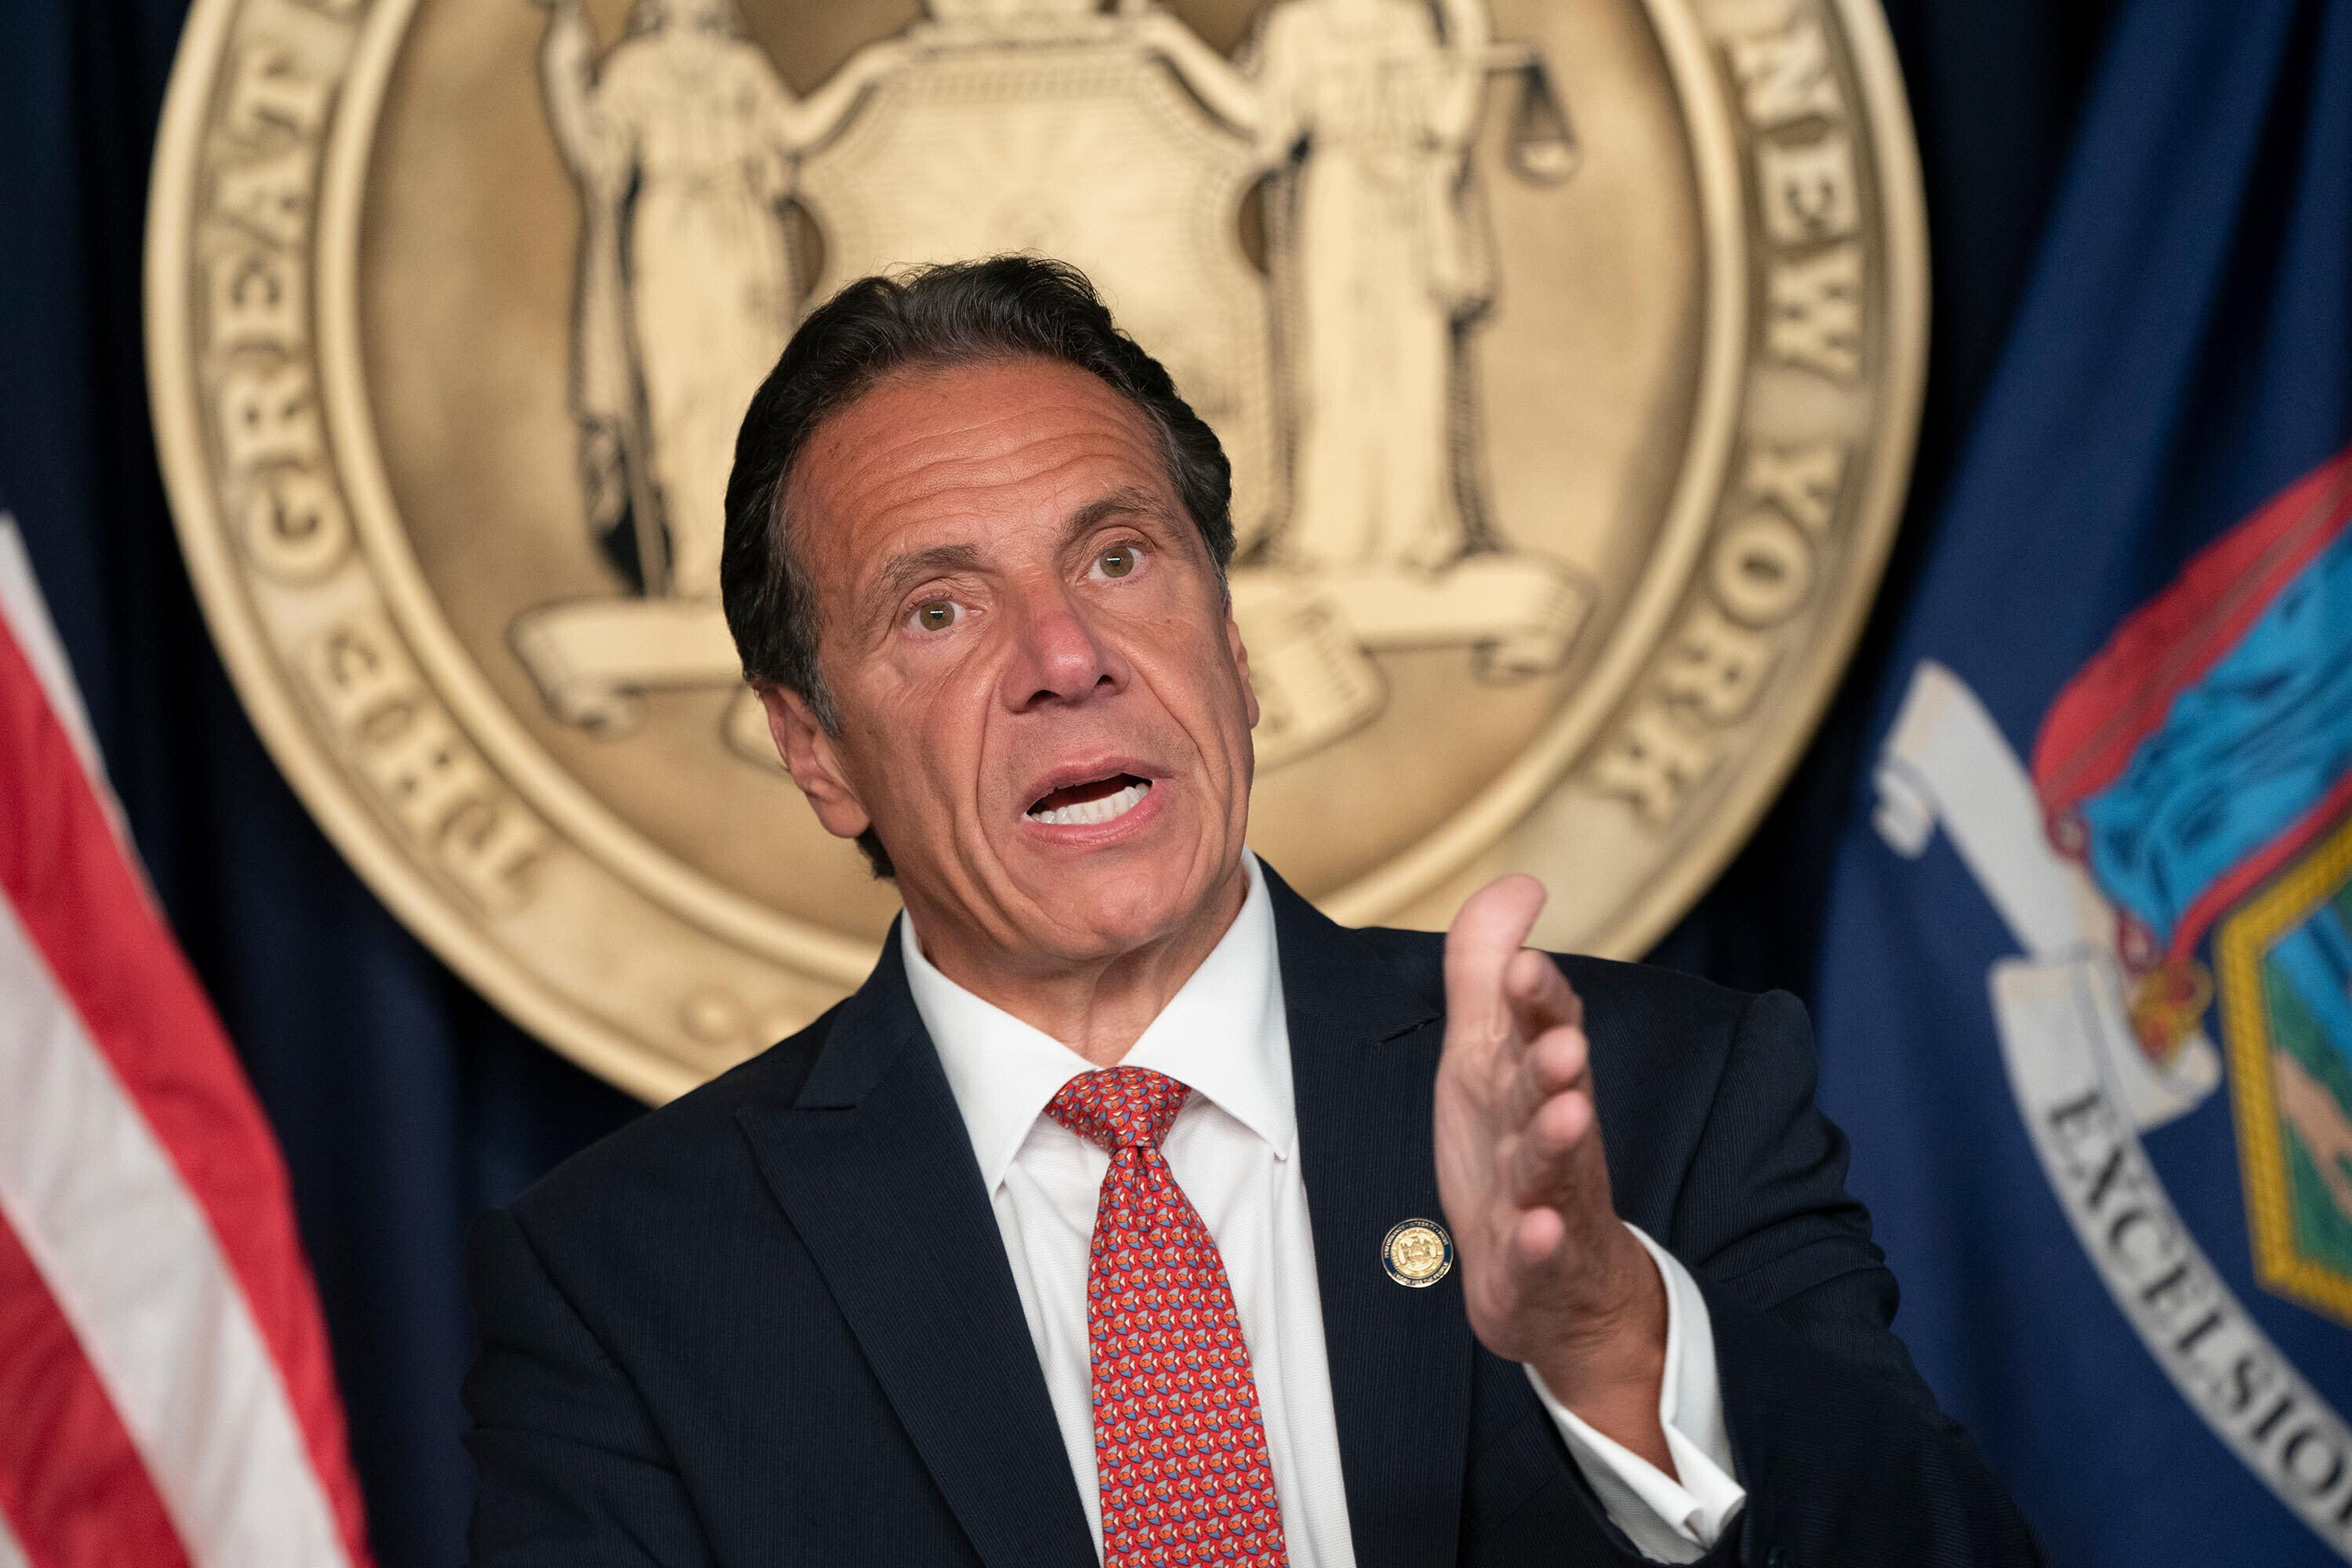 New York Gov. Andrew Cuomo sexually harassed multiple women, state attorney general report says